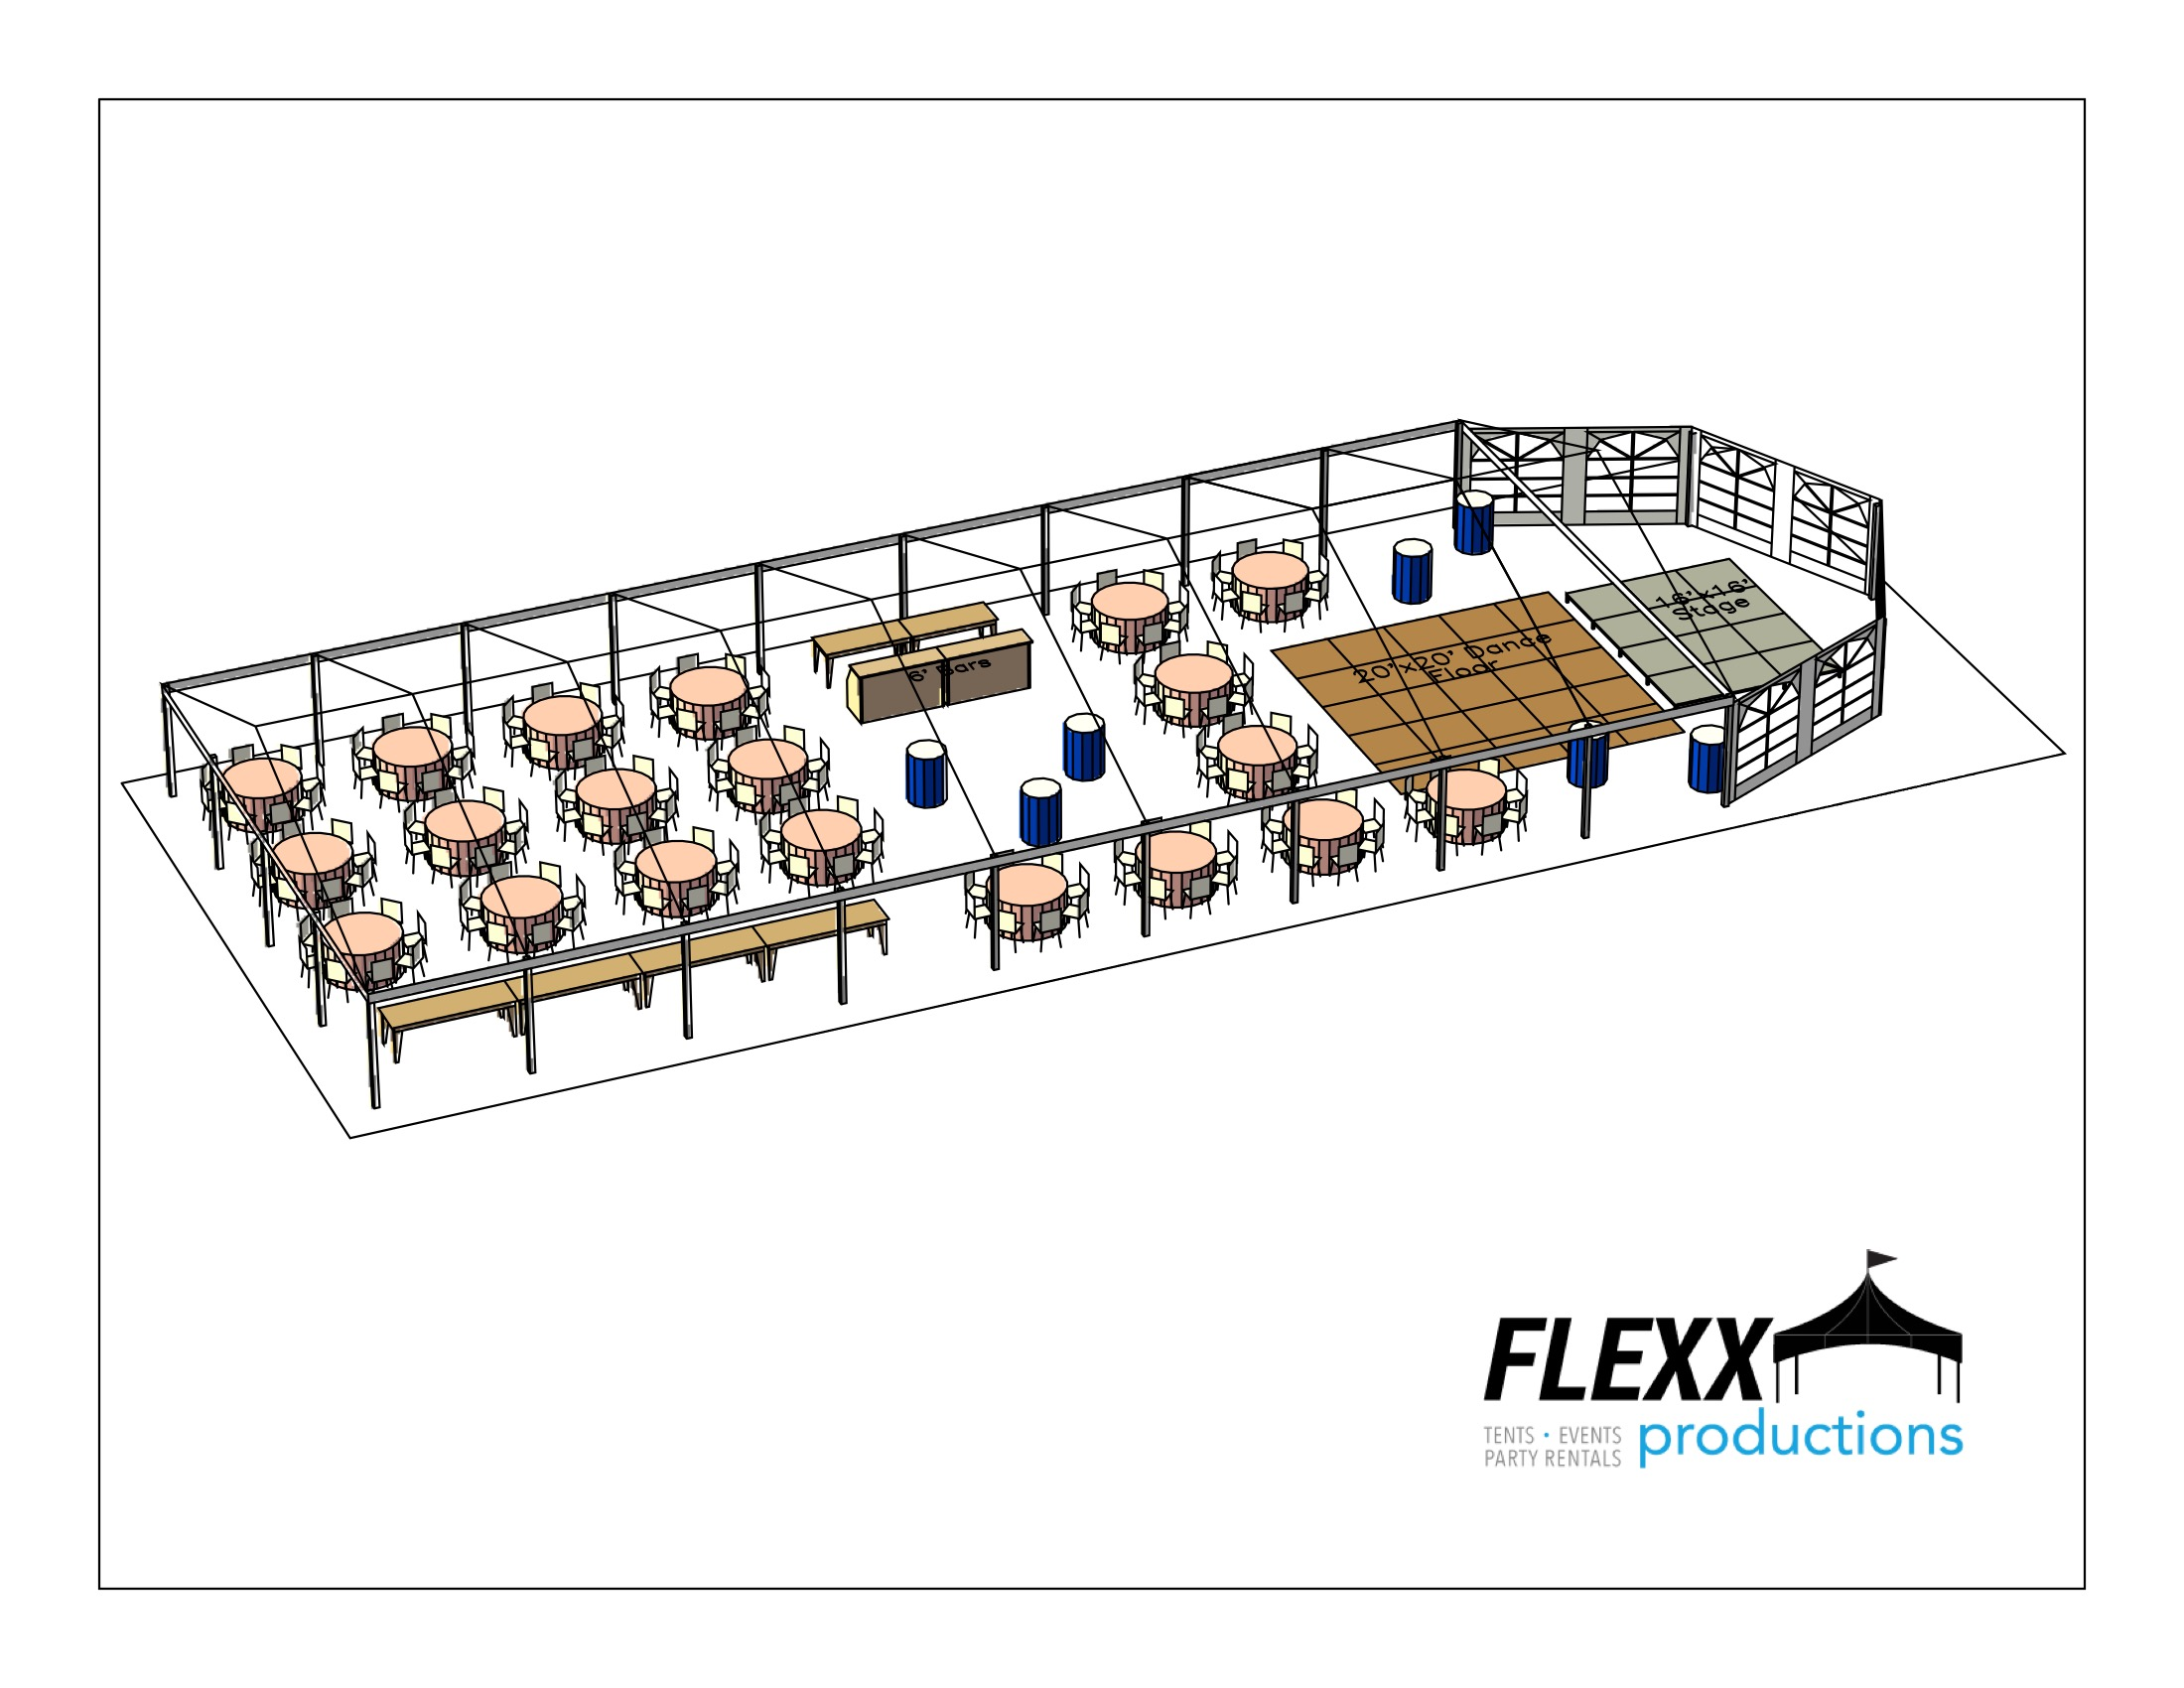 40x90 Flexx Productions Clearspan Tent Layout